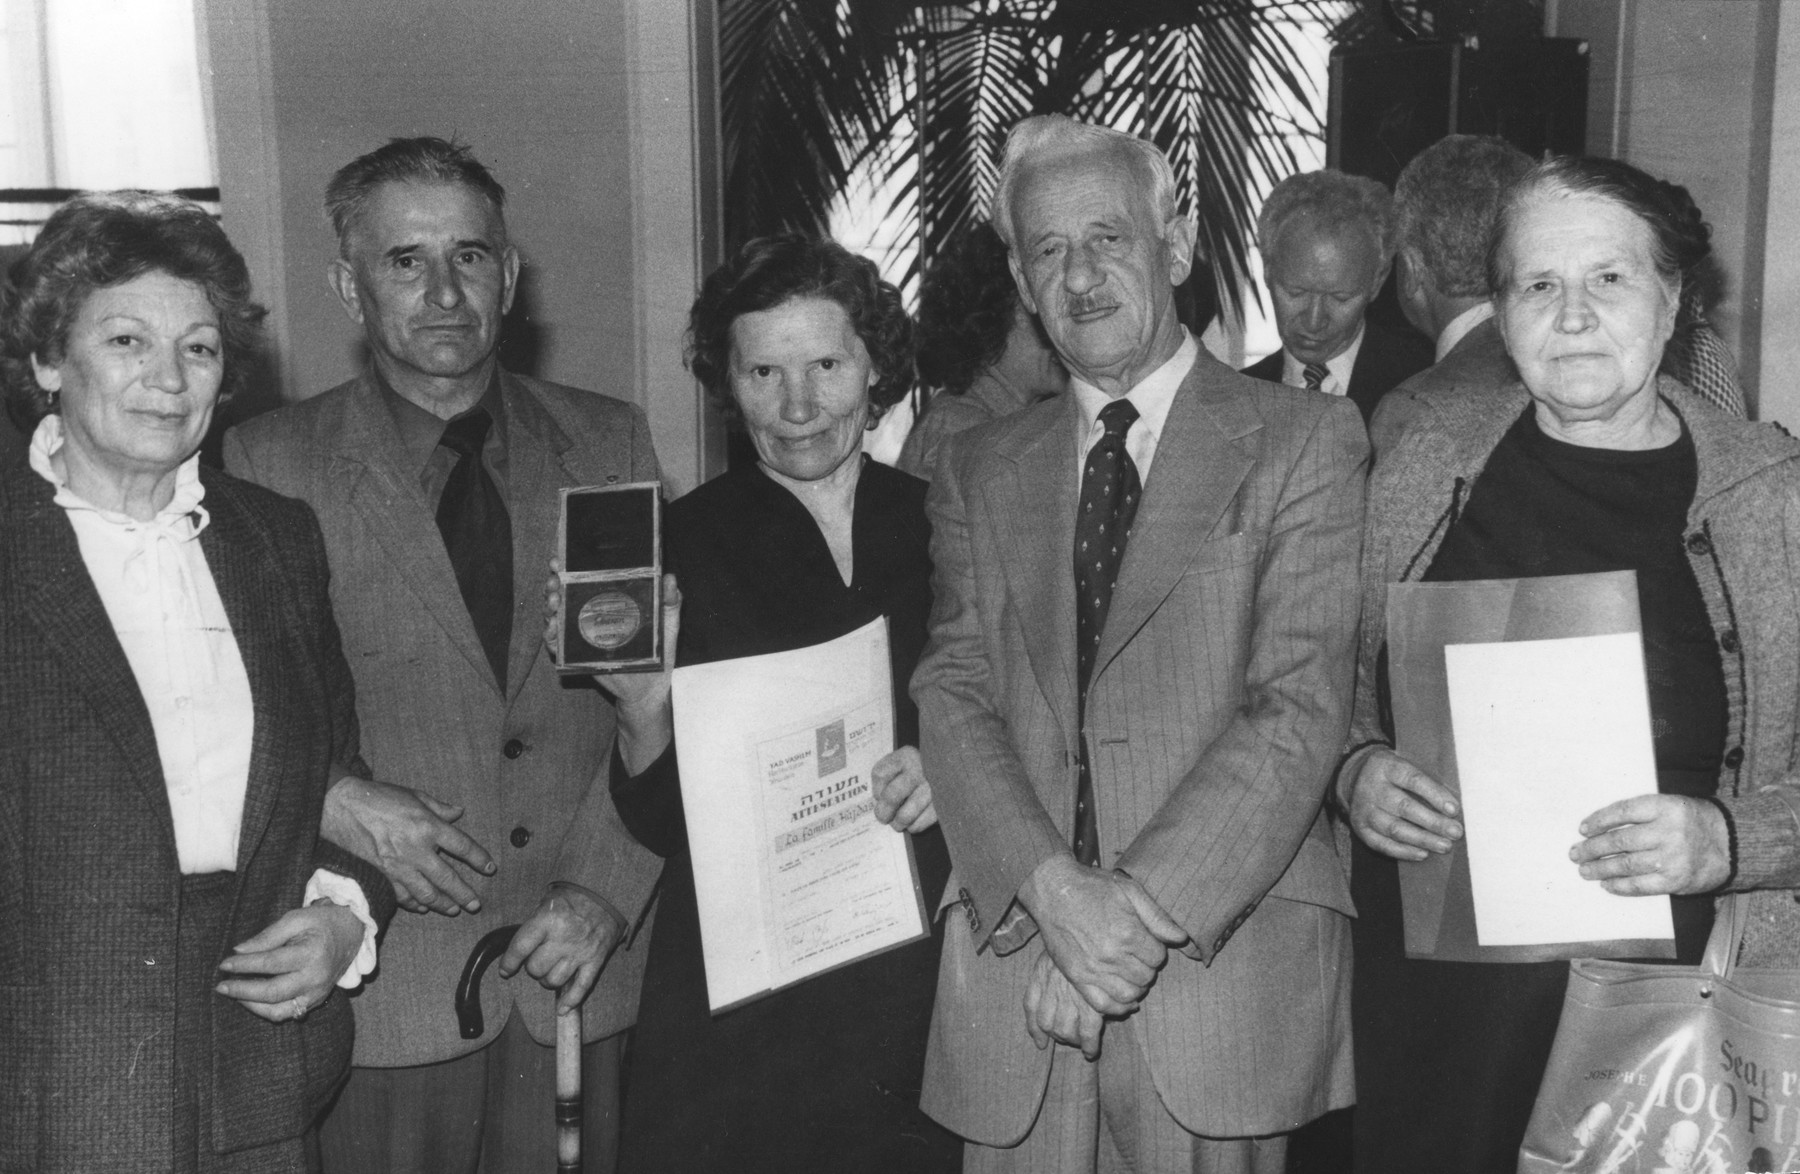 Marysia Sawicka is awarded the Righteous among the Nations medal from Yad Vashem for her assistance to Polish Jews during the war.    Among those pictured are Warsaw ghetto fighter, Stefan Grajek (second from the right) and his wife, Uta Grajek (far left).  Marysia Sawicka is pictured in the center.